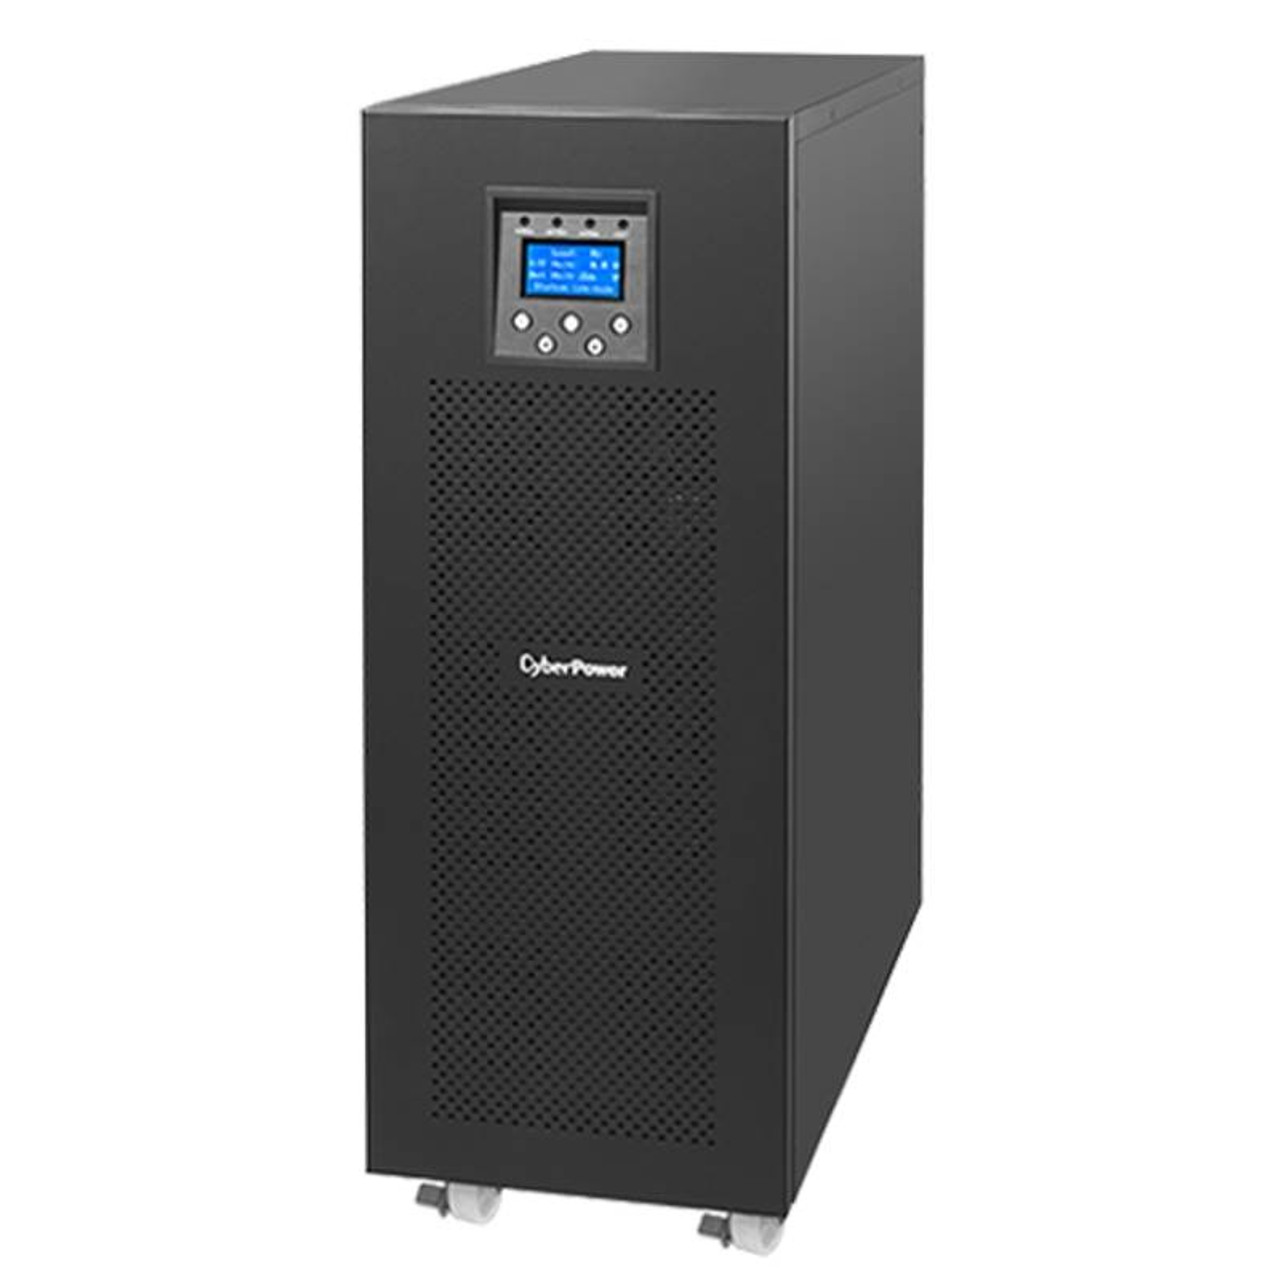 Image for CyberPower Online S Series OLS10000E Tower 10000VA/9000W Pure Sine Wave UPS CX Computer Superstore